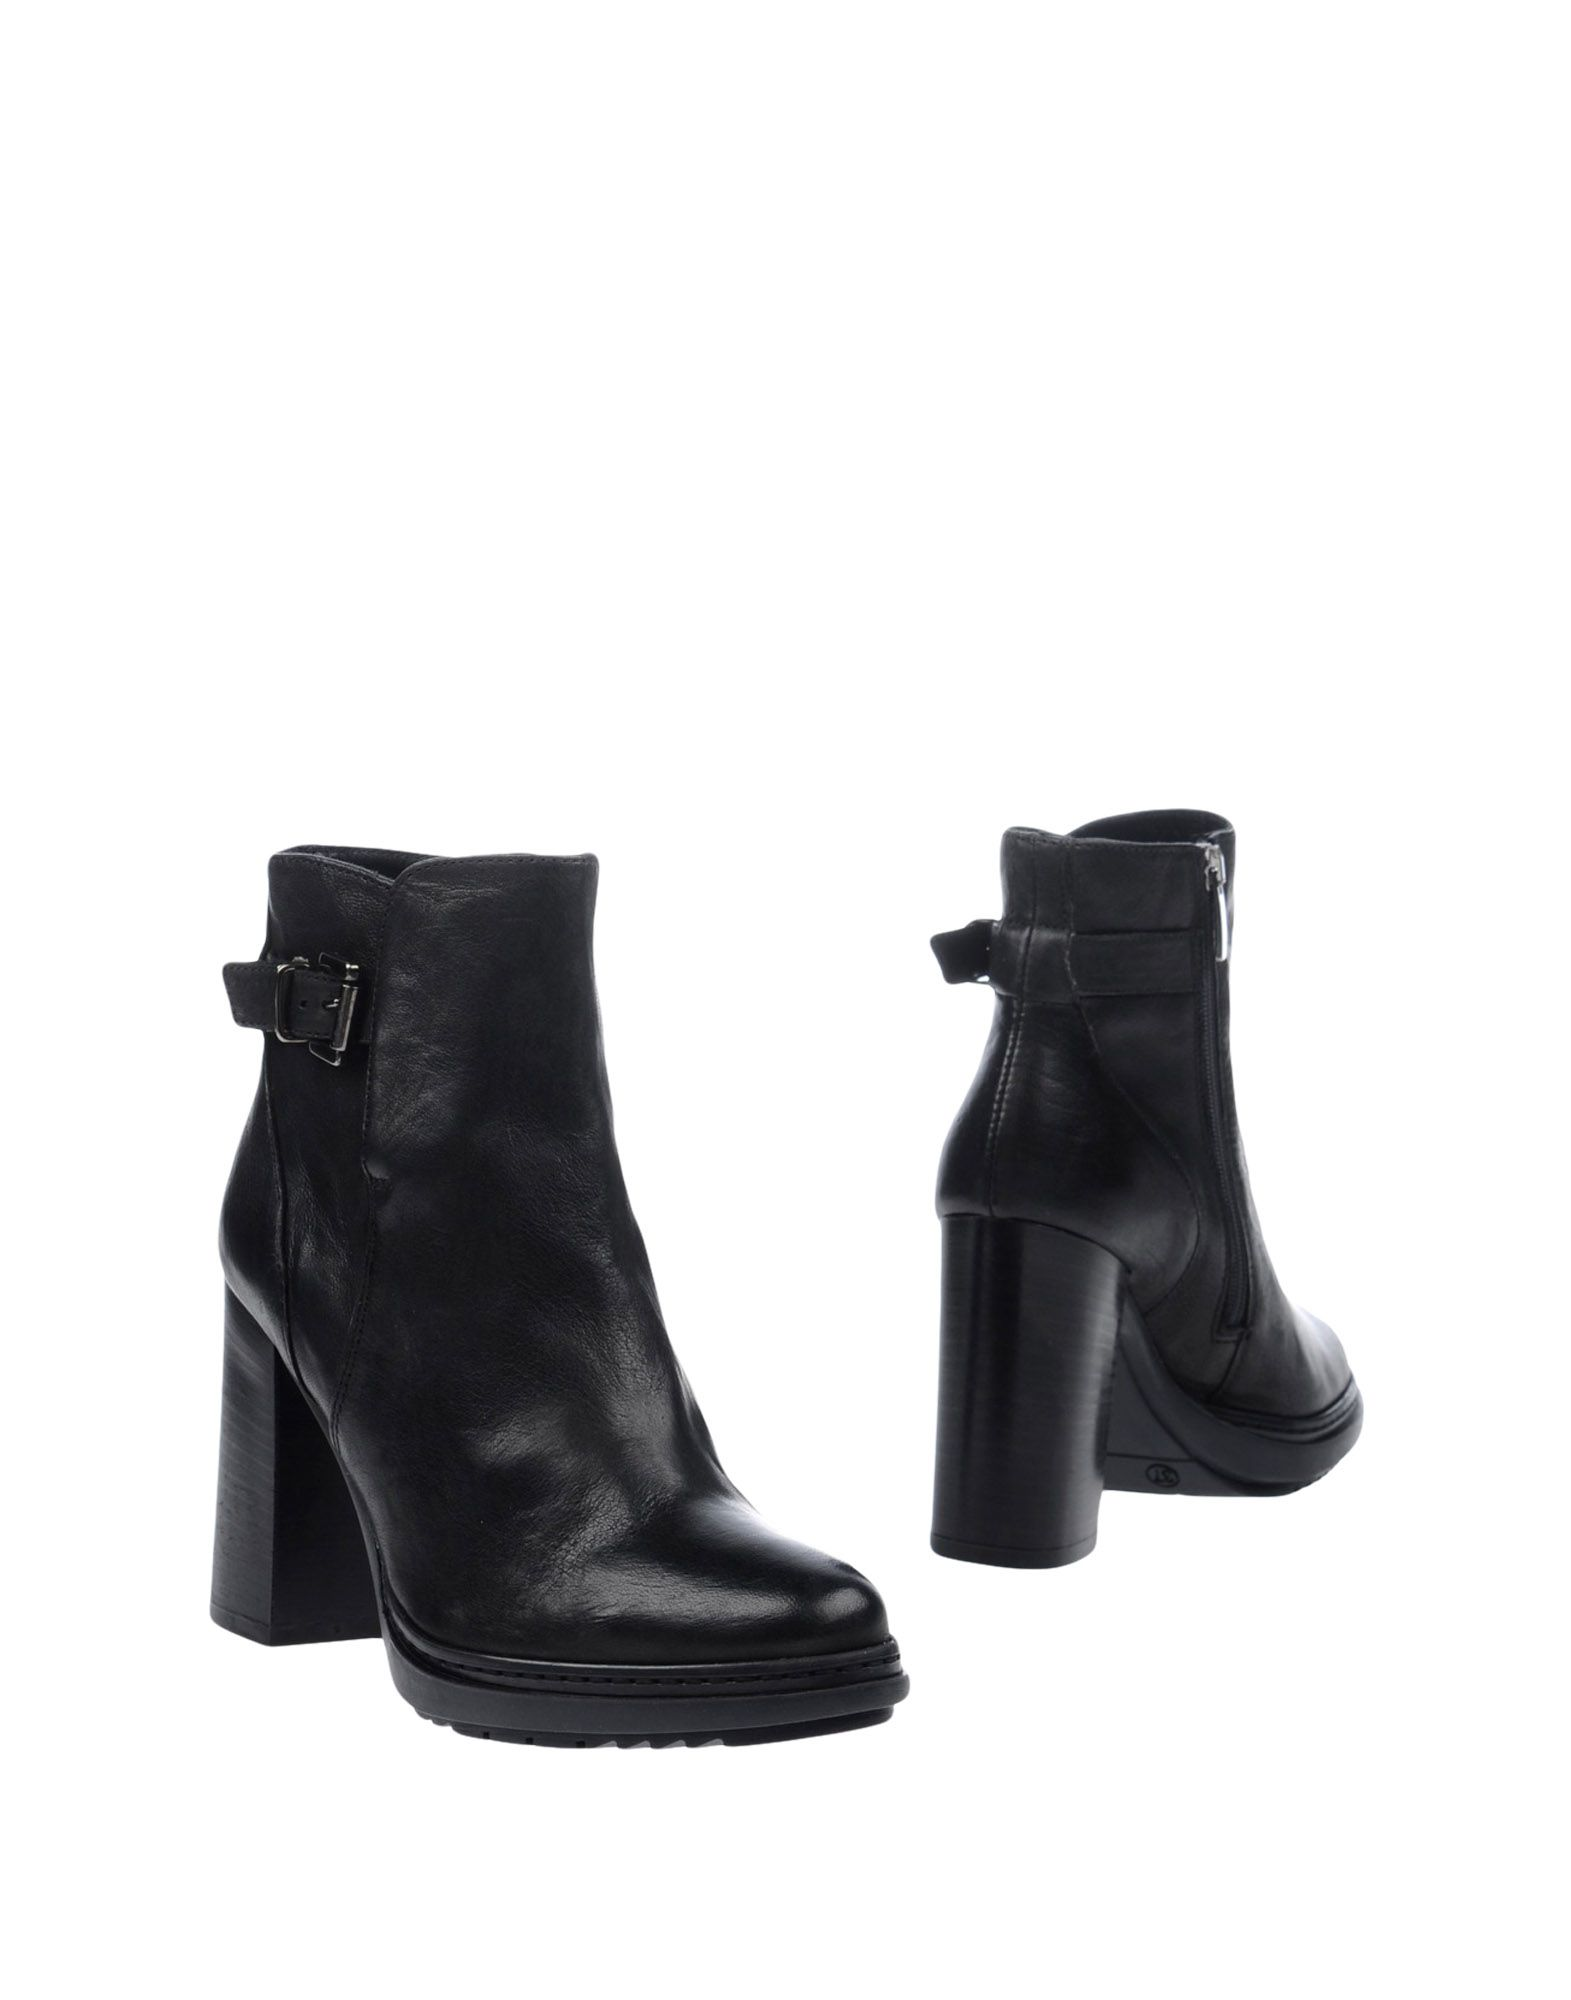 Peperosa Ankle Boot - Women Peperosa Ankle Boots online 11241364NV on  Australia - 11241364NV online f3e762